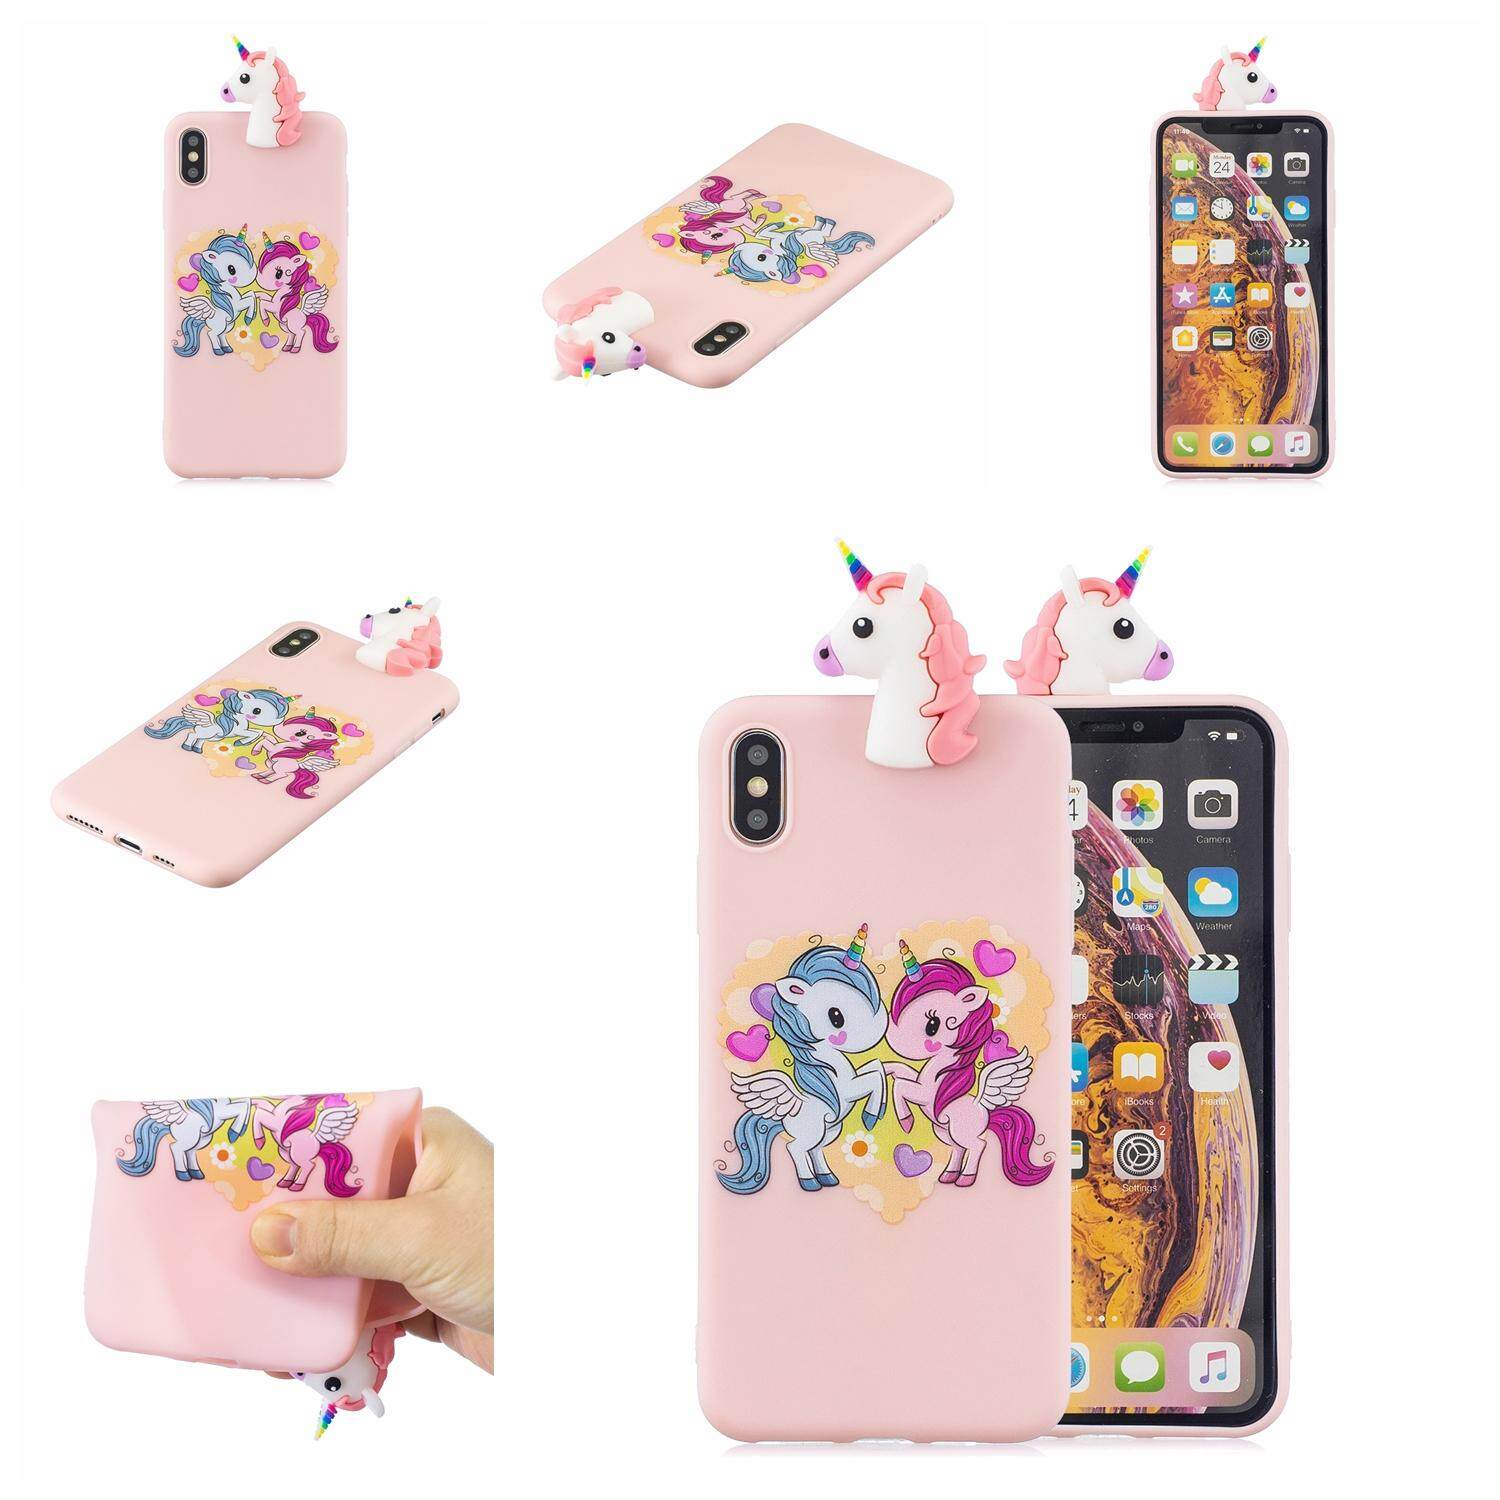 For OPPO A83/A1/F5 lite 3D Cute Coloured Painted Animal TPU Anti-scratch  Non-slip Protective Cover Back Case Style:OPPO A83/A1/F5 lite